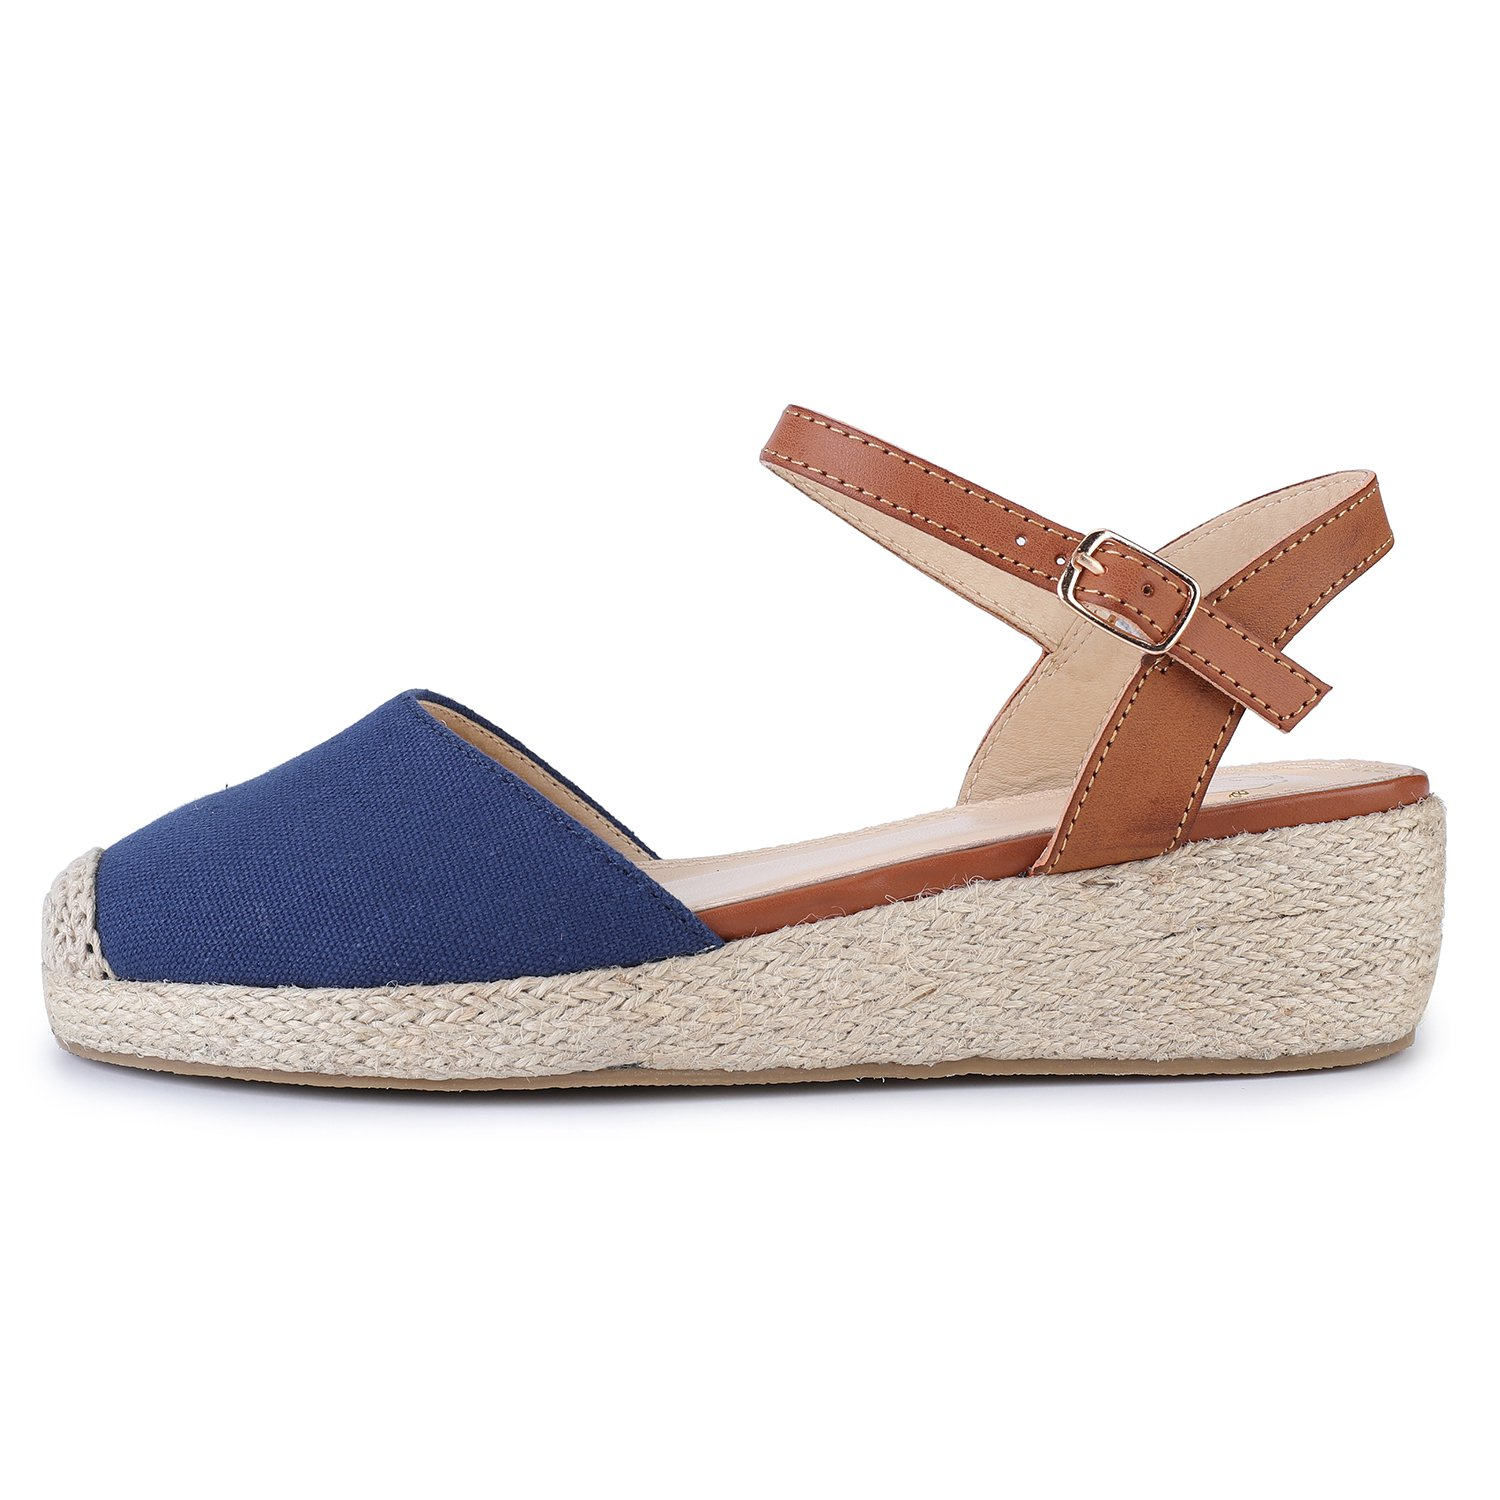 Amazon.com | Alexis Leroy Womens Closed Toe Buckle Strap Slingback Platform Espadrilles Flats Sandals | Platforms & Wedges